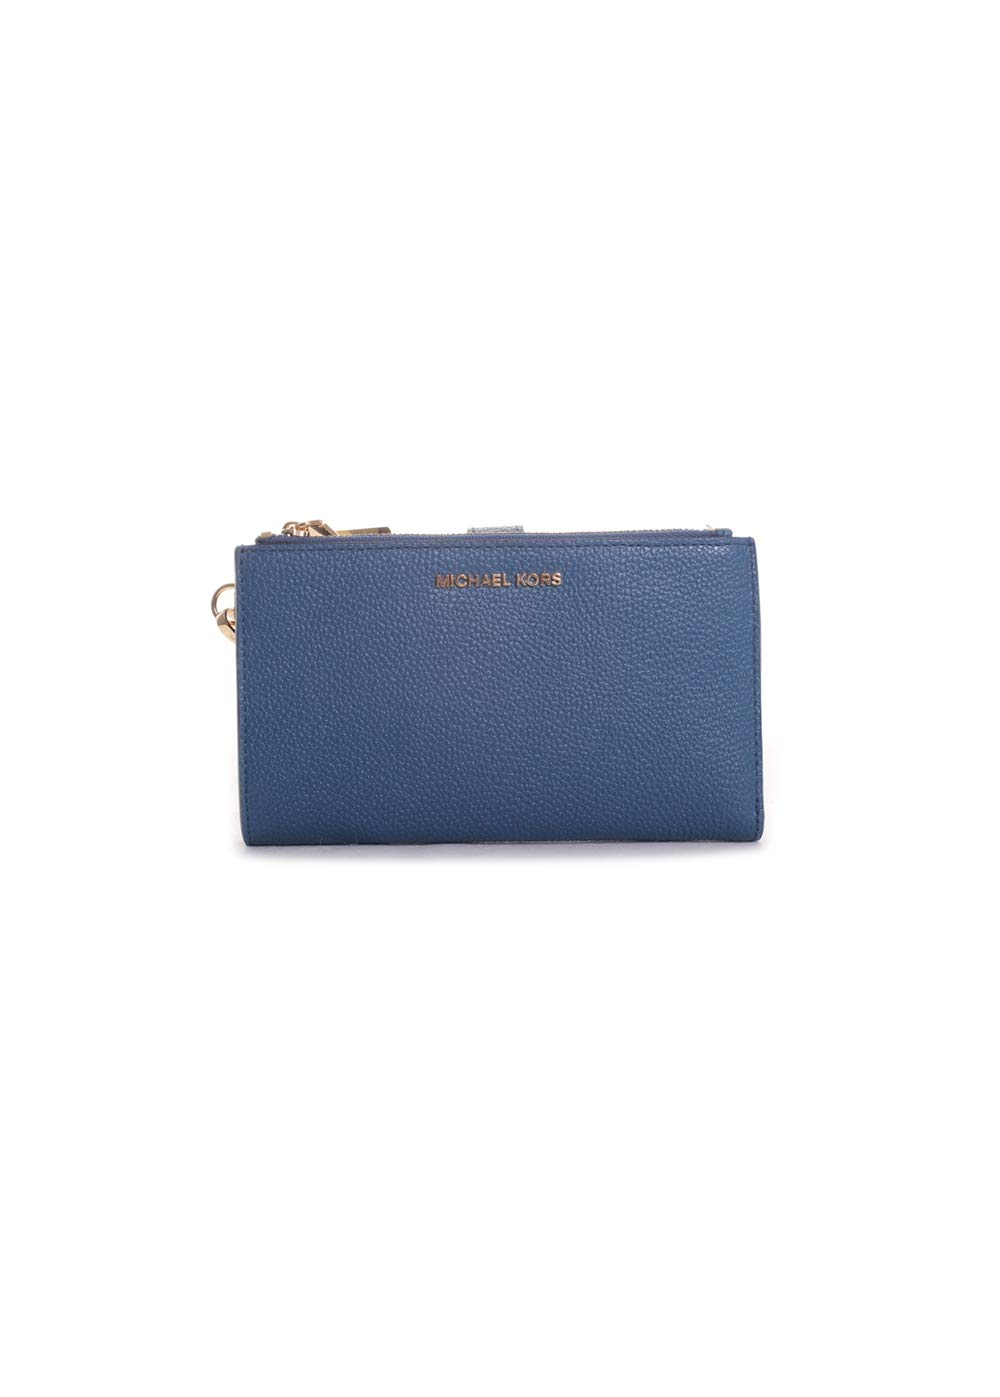 Michael Kors Double Zip Leather Wristlet in Dark Chambray by Michael Kors (Image #1)